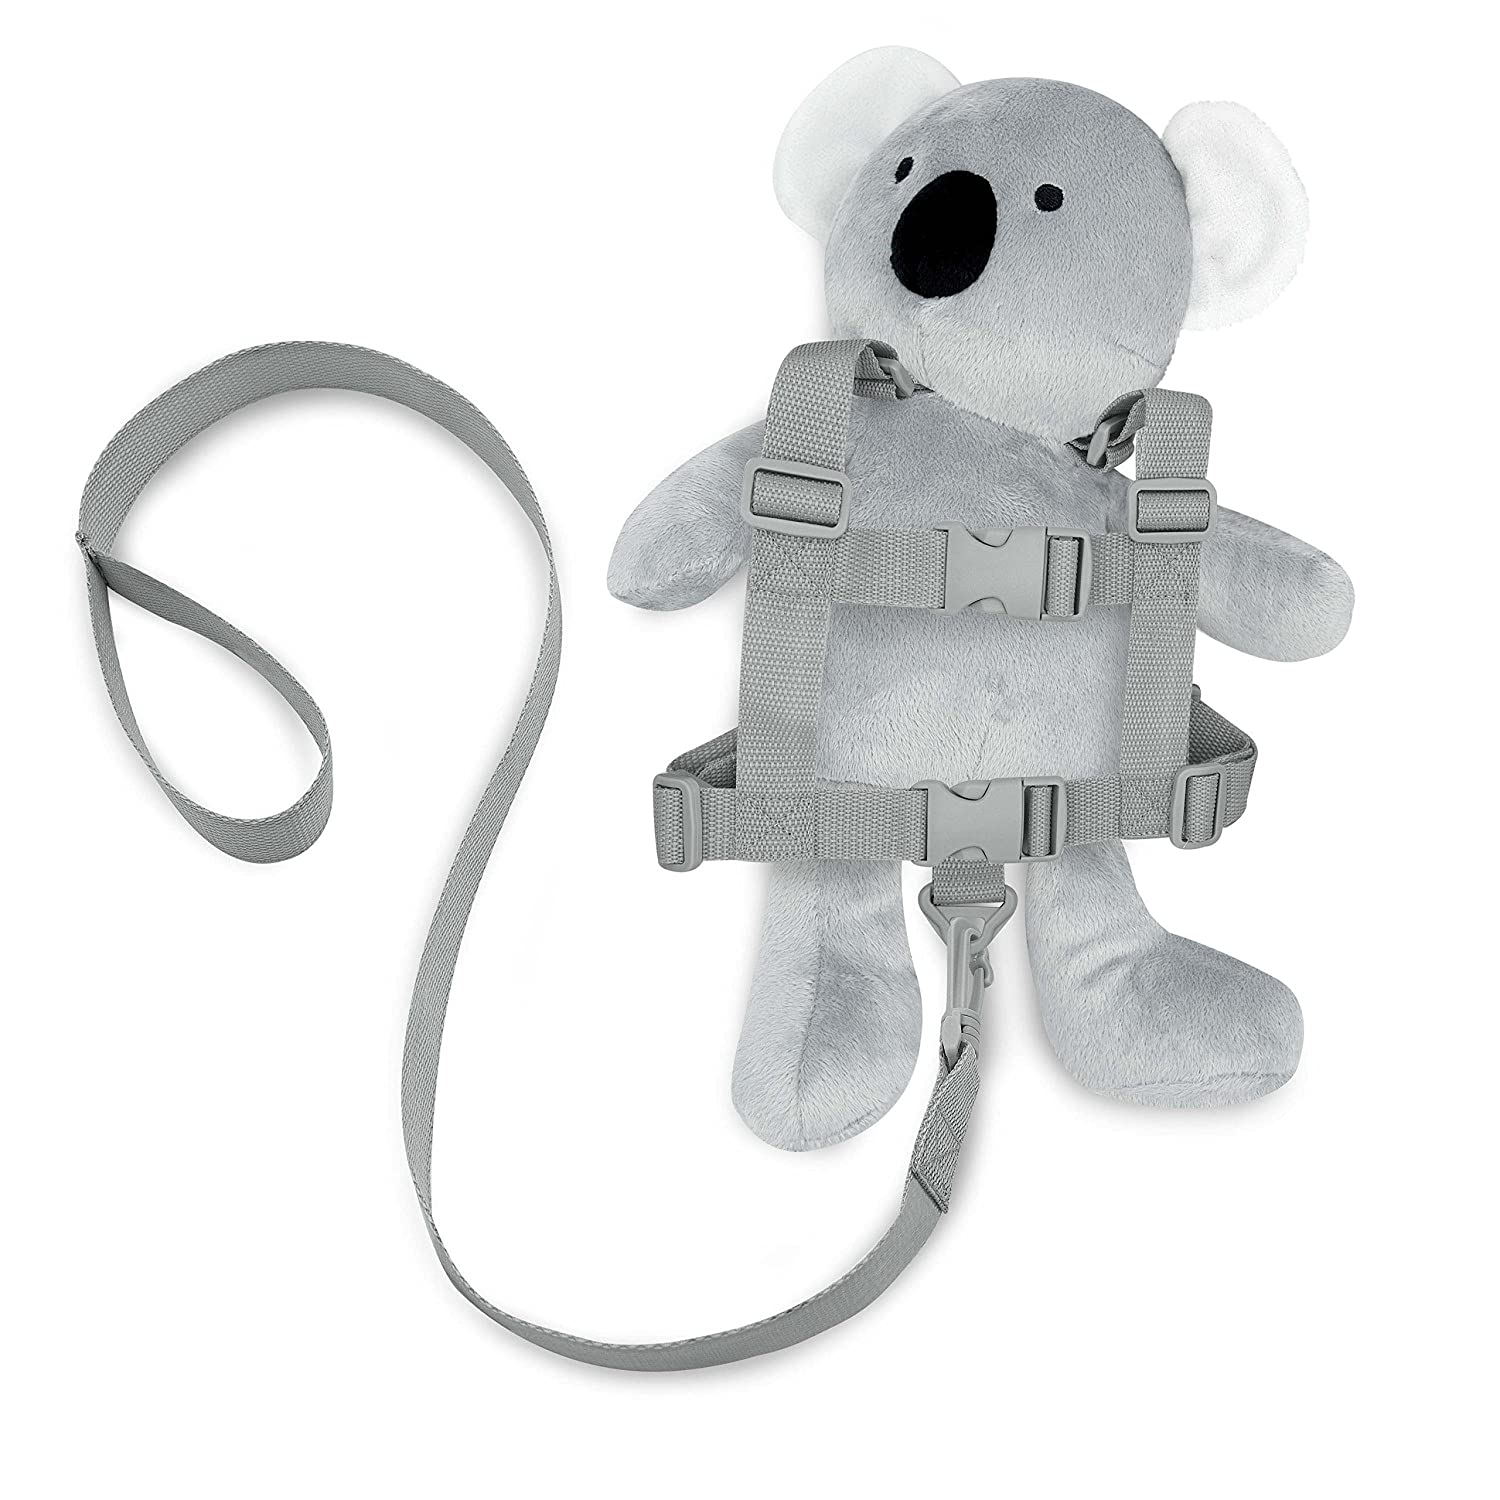 Travel Bug Toddler Character 2-in-1 Safety Harness (Koala - Grey/White)